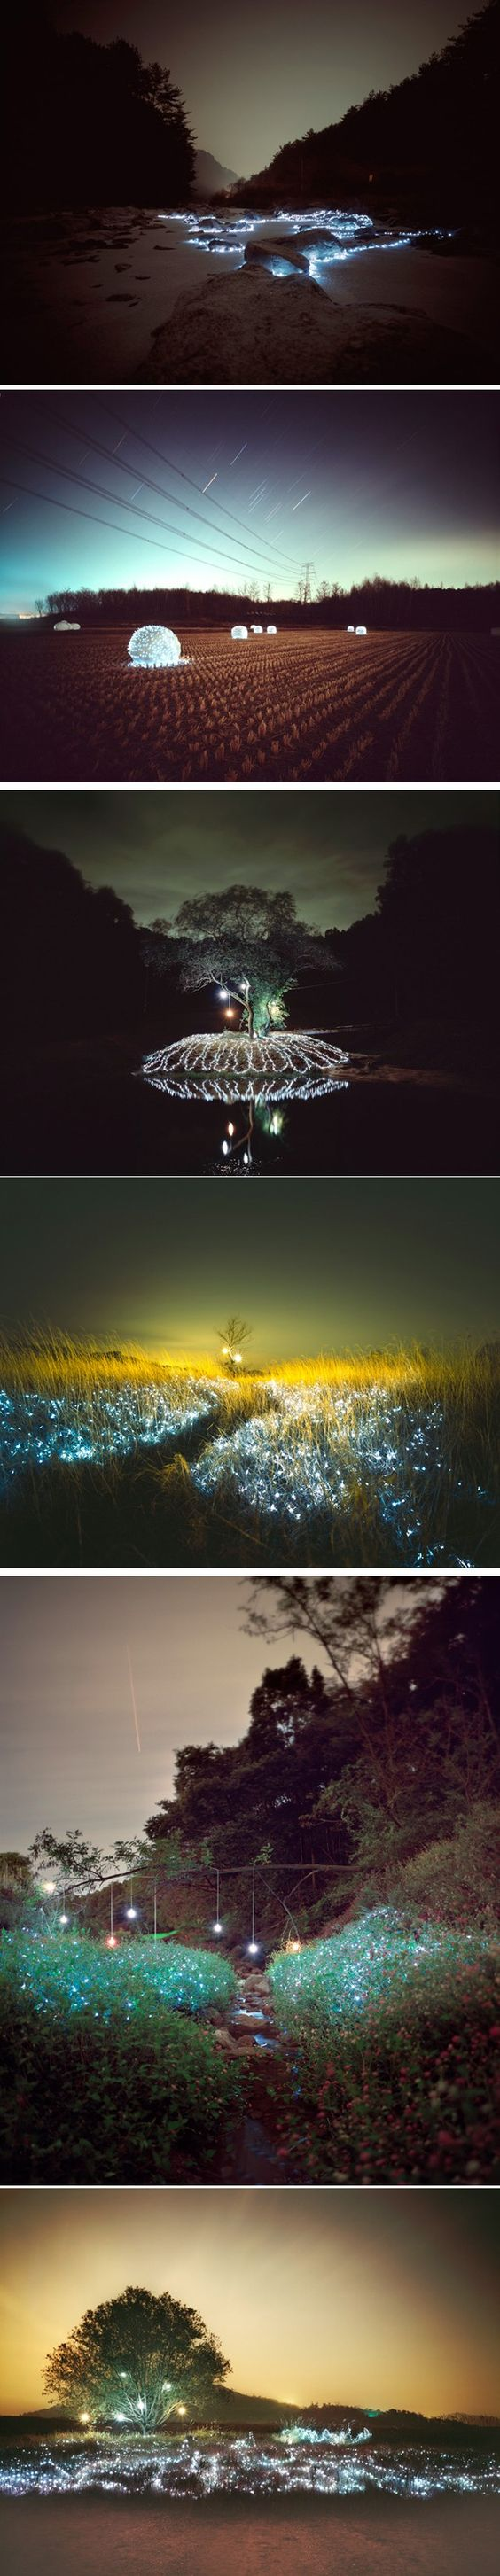 Installations lumineuses par Lee Eunyeol - Journal du Design